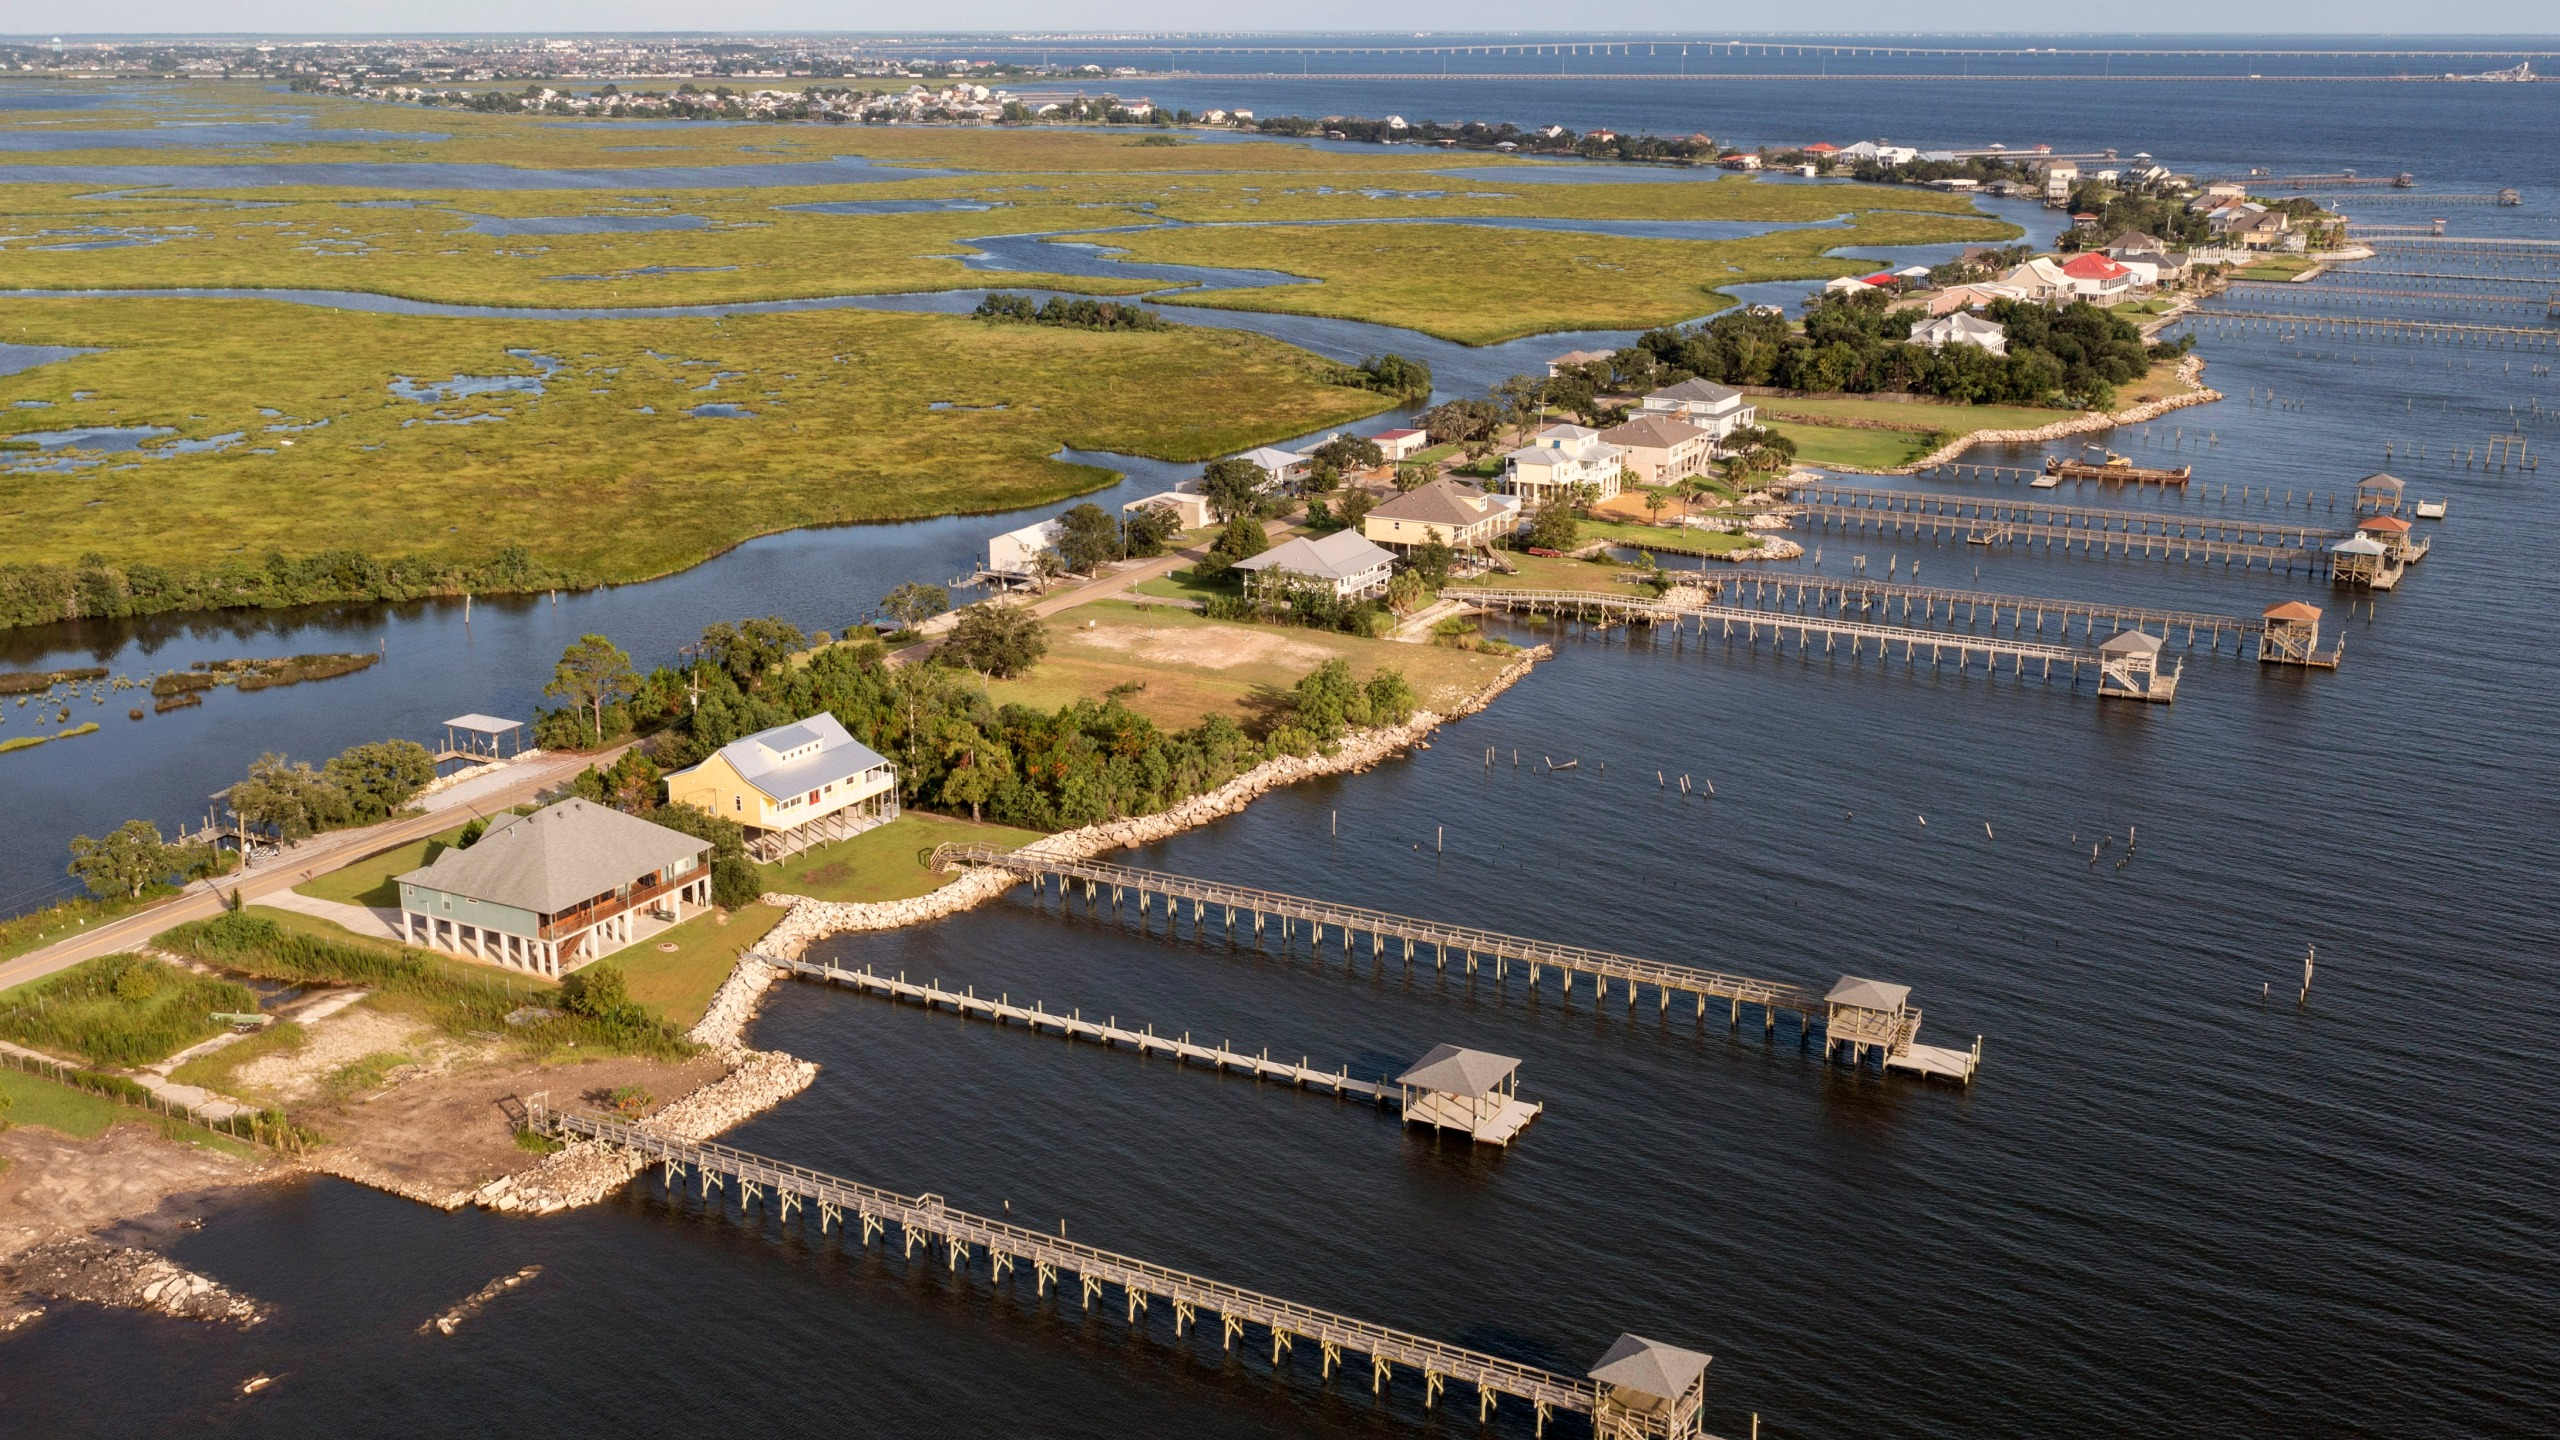 Few signs of activity are seen along the shoreline of Lake Pontchartrain as residents prepare for the expected arrival of Hurricane Ida Saturday, Aug. 28, 2021, in Slidell, La. The area was hard hit by Hurricane Katrina and it appears that most residents have evacuated prior to the arrival of Hurricane Ida. (AP Photo/Steve Helber)